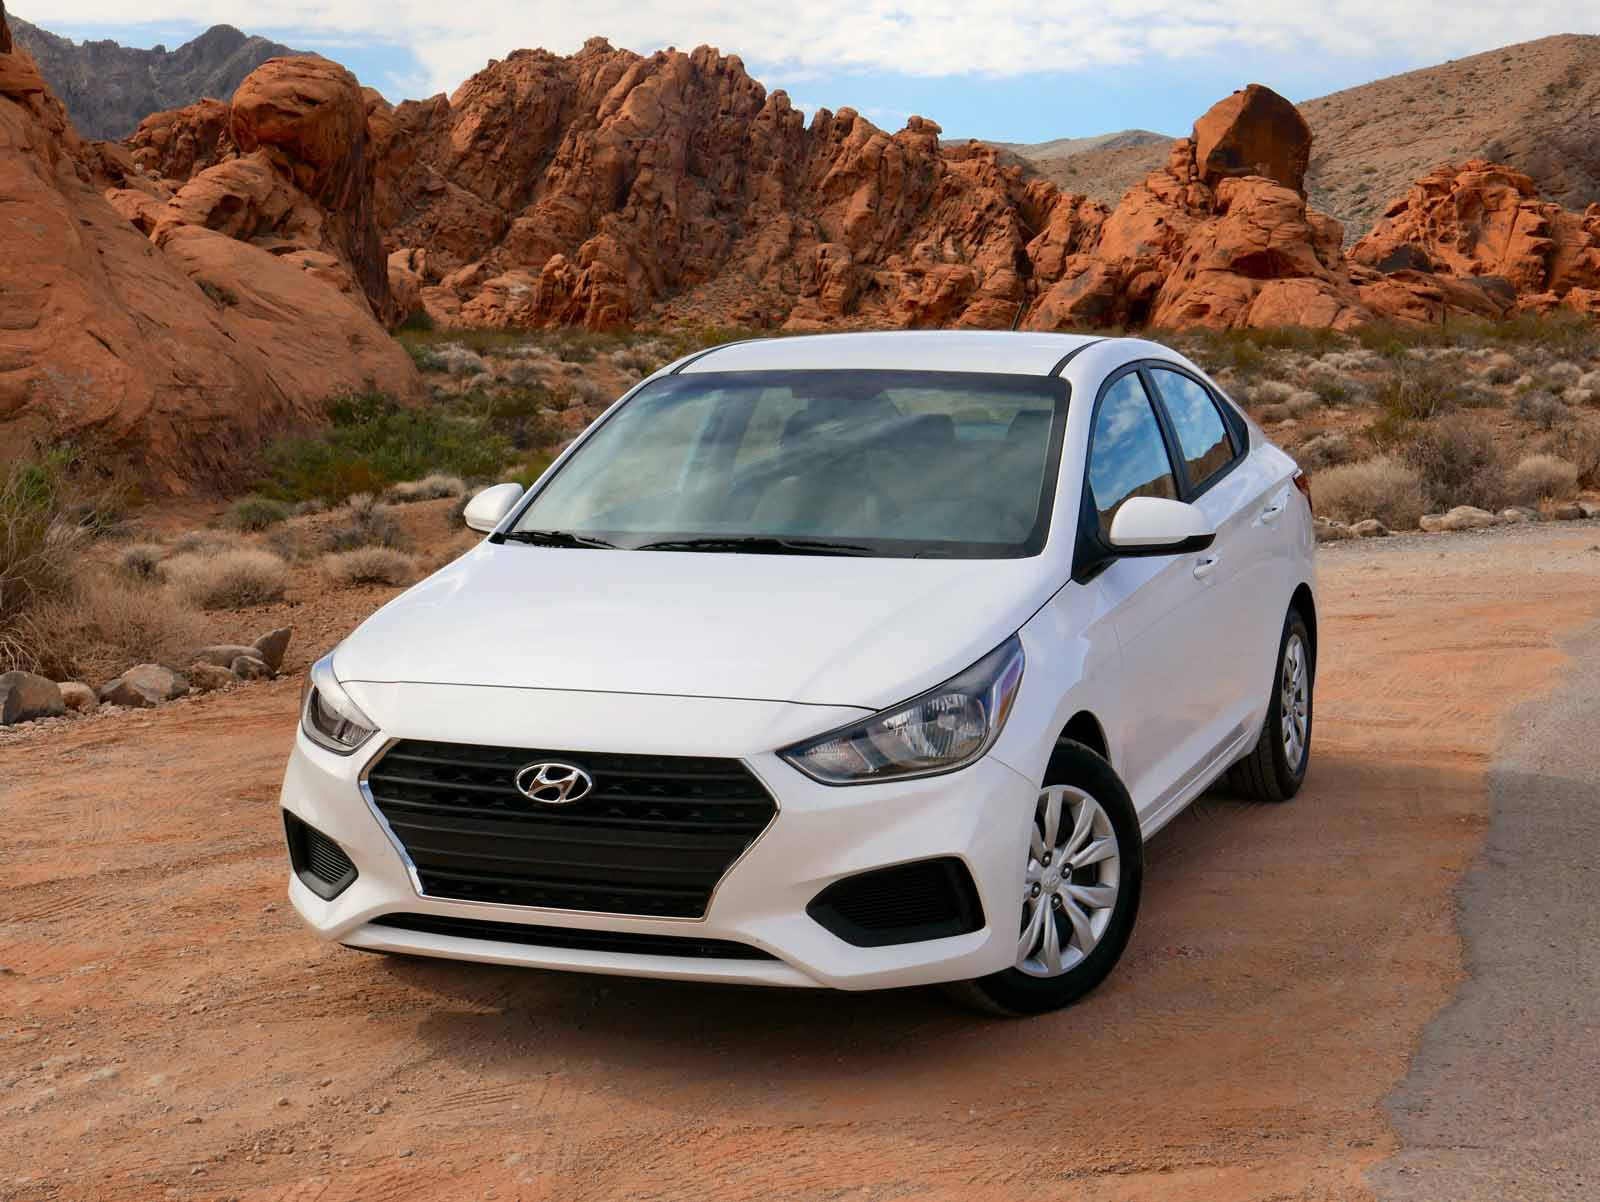 2018 Hyundai Accent Review HUNTING 5 hyundai elantra forum  at readyjetset.co